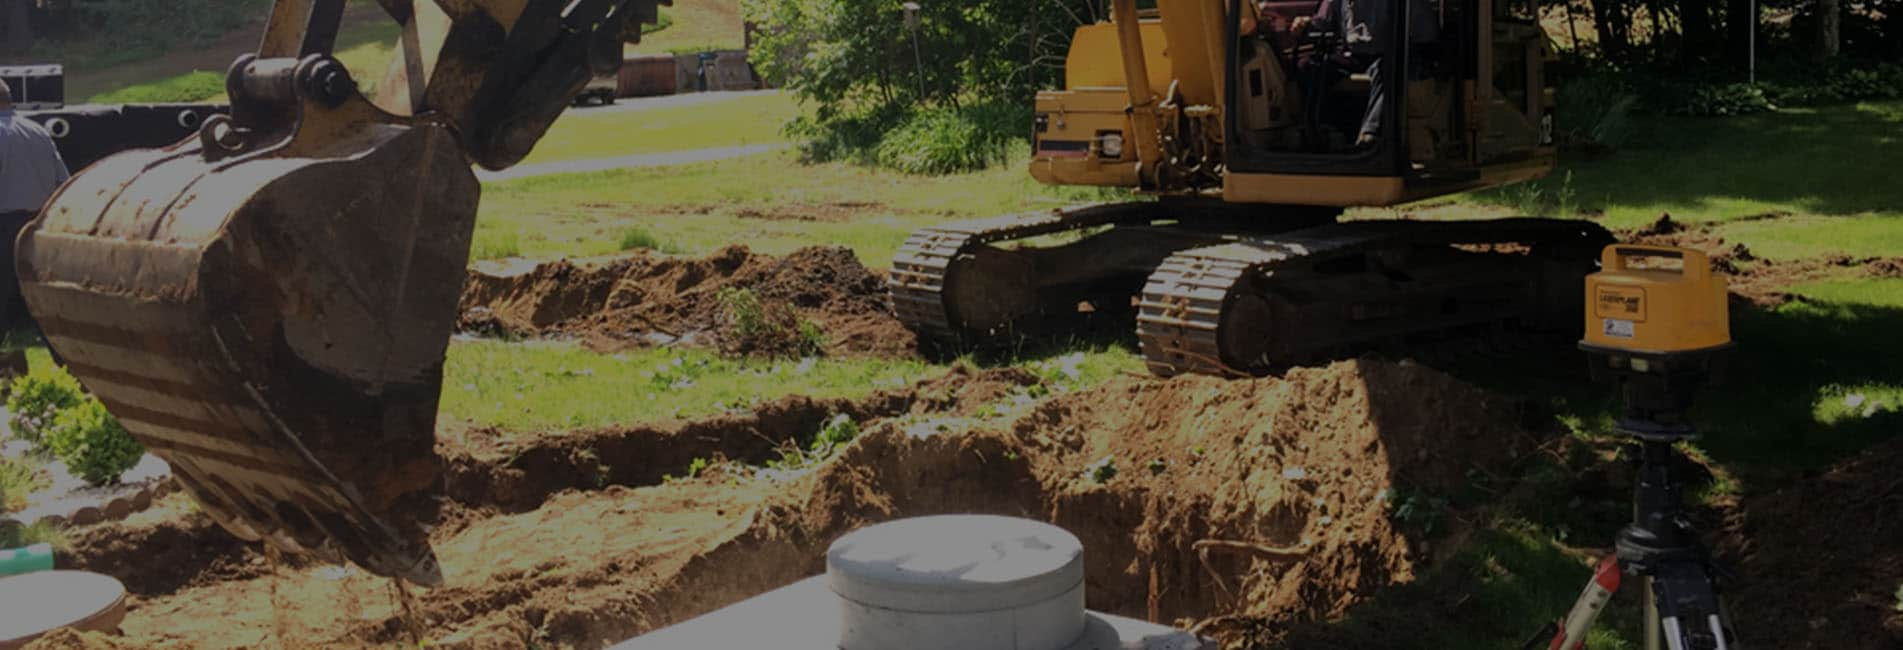 septic pumping lehigh valley pa